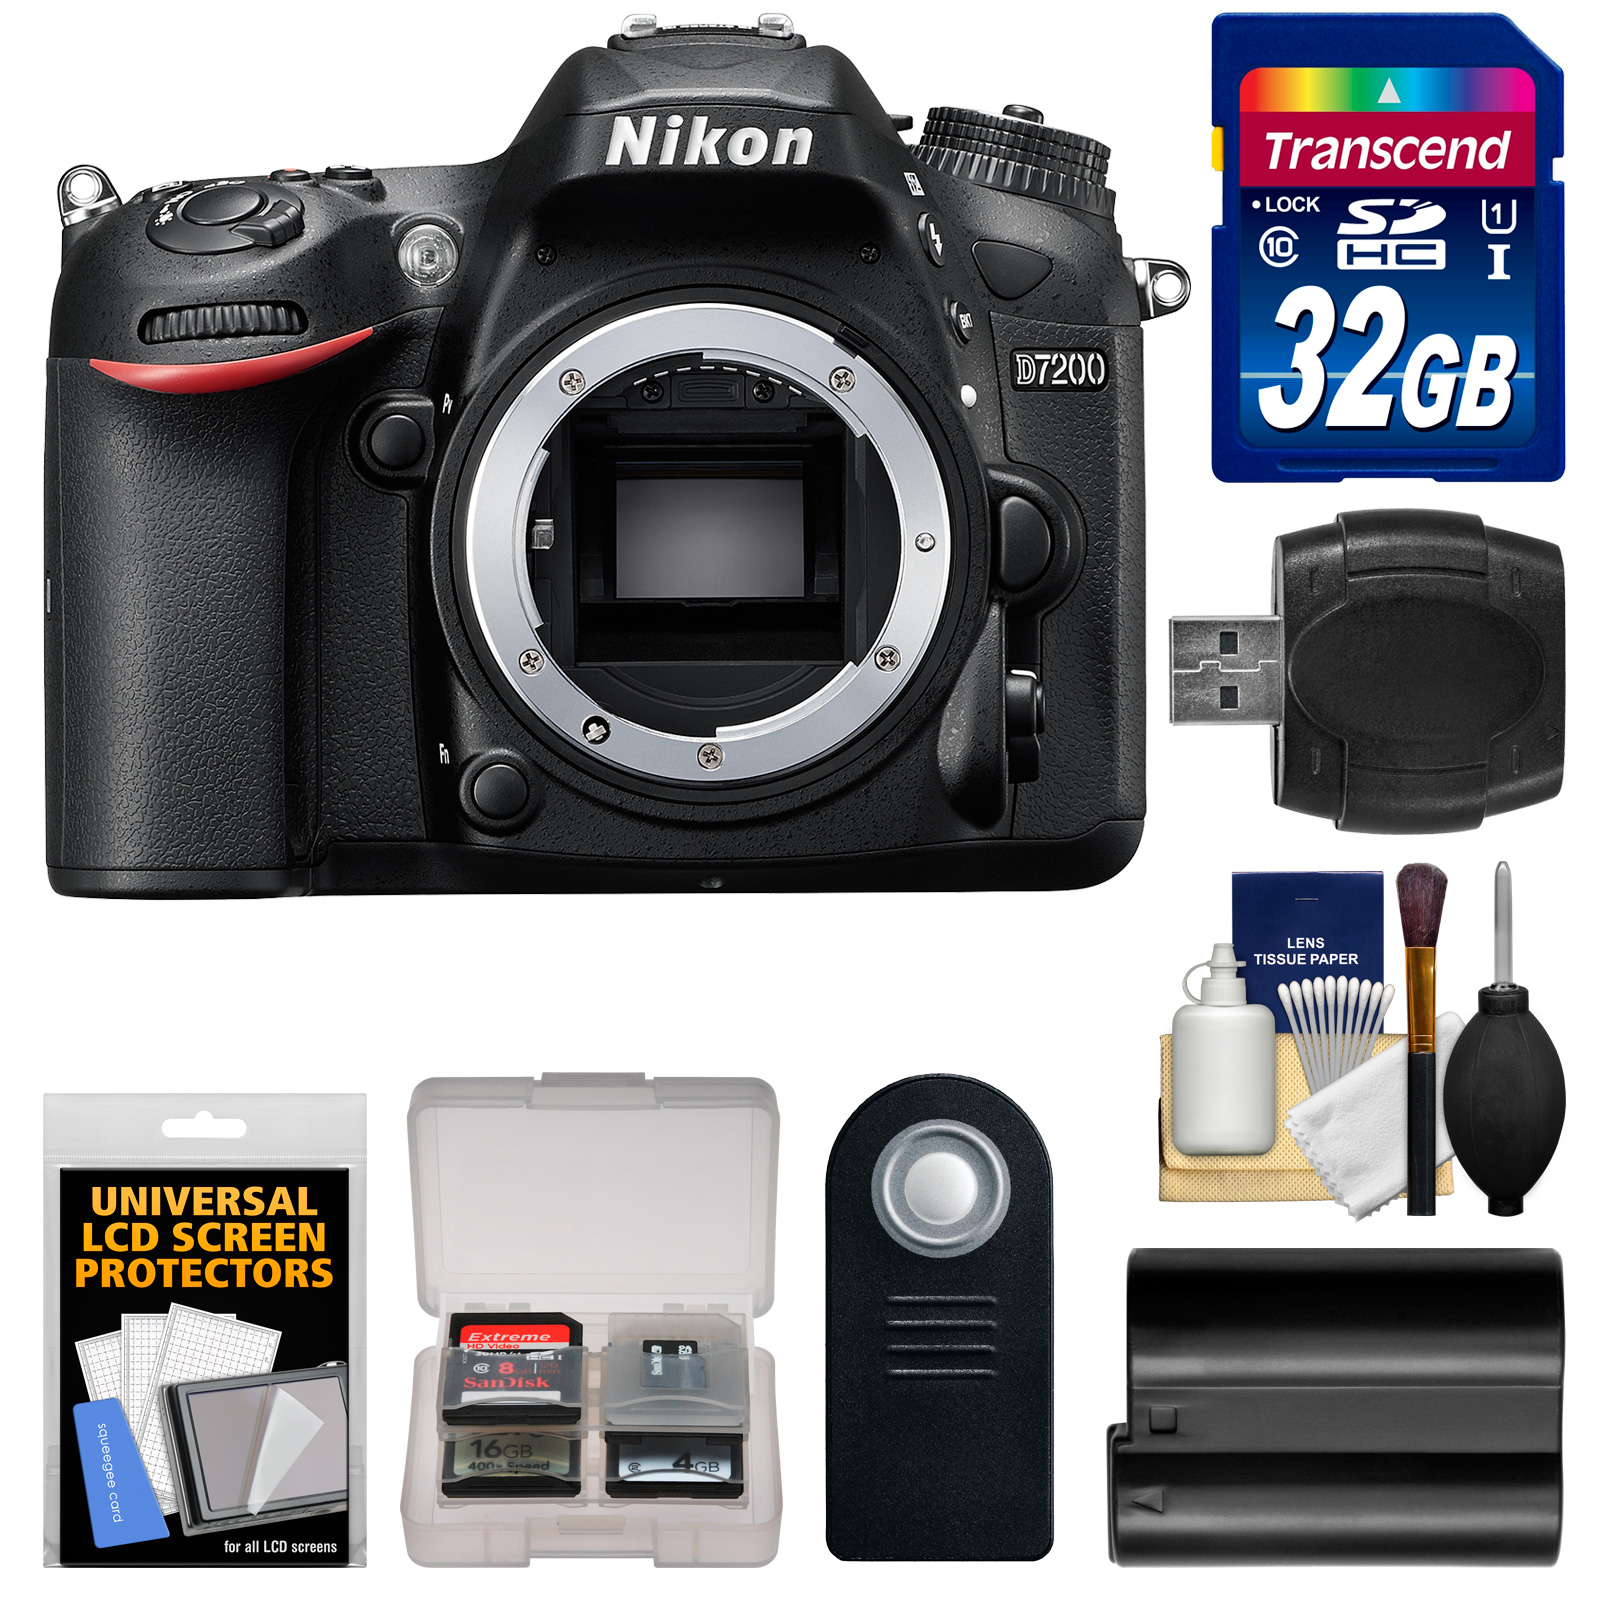 Nikon D7200 Wi-Fi Digital SLR Camera Body - Factory Refurbished with 32GB Card + Battery + Remote + Reader + Kit